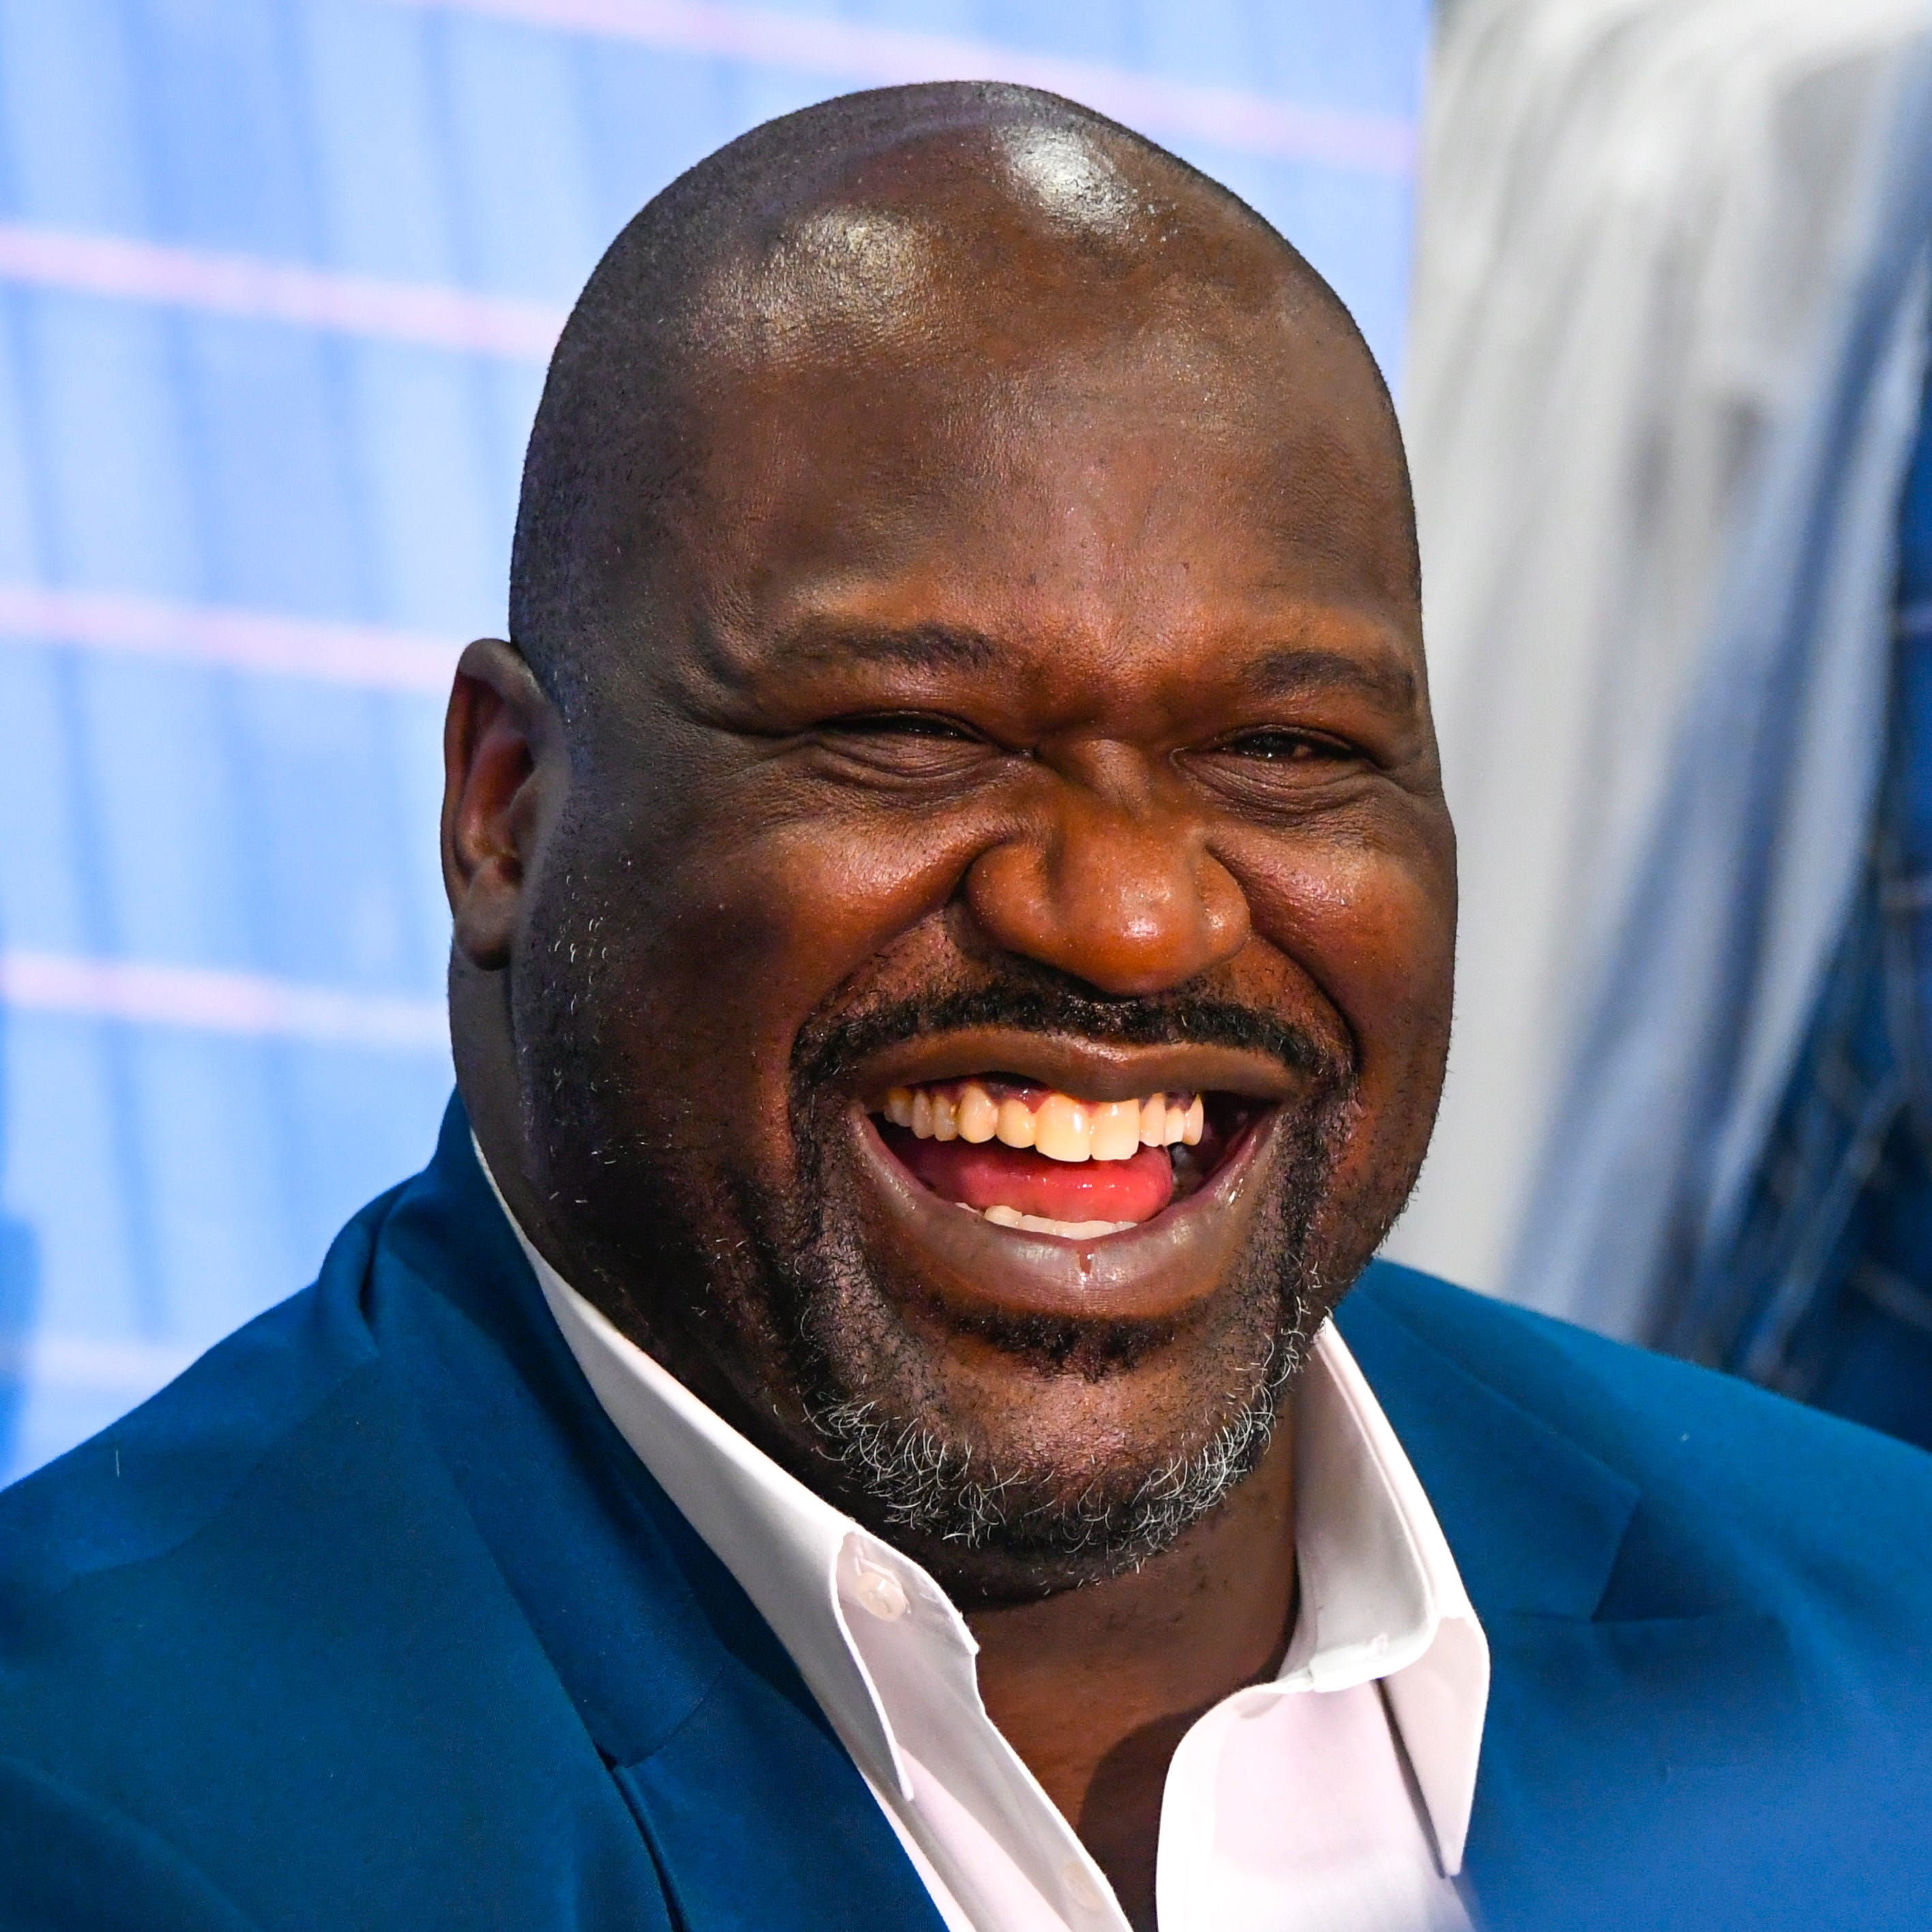 Shaquille O' Neal greets candidates at a casting call for Shaquille O' Neal's Big & Tall Model Search presented by JCPenney and Wilhelmina on Thursday April 11, 2019.